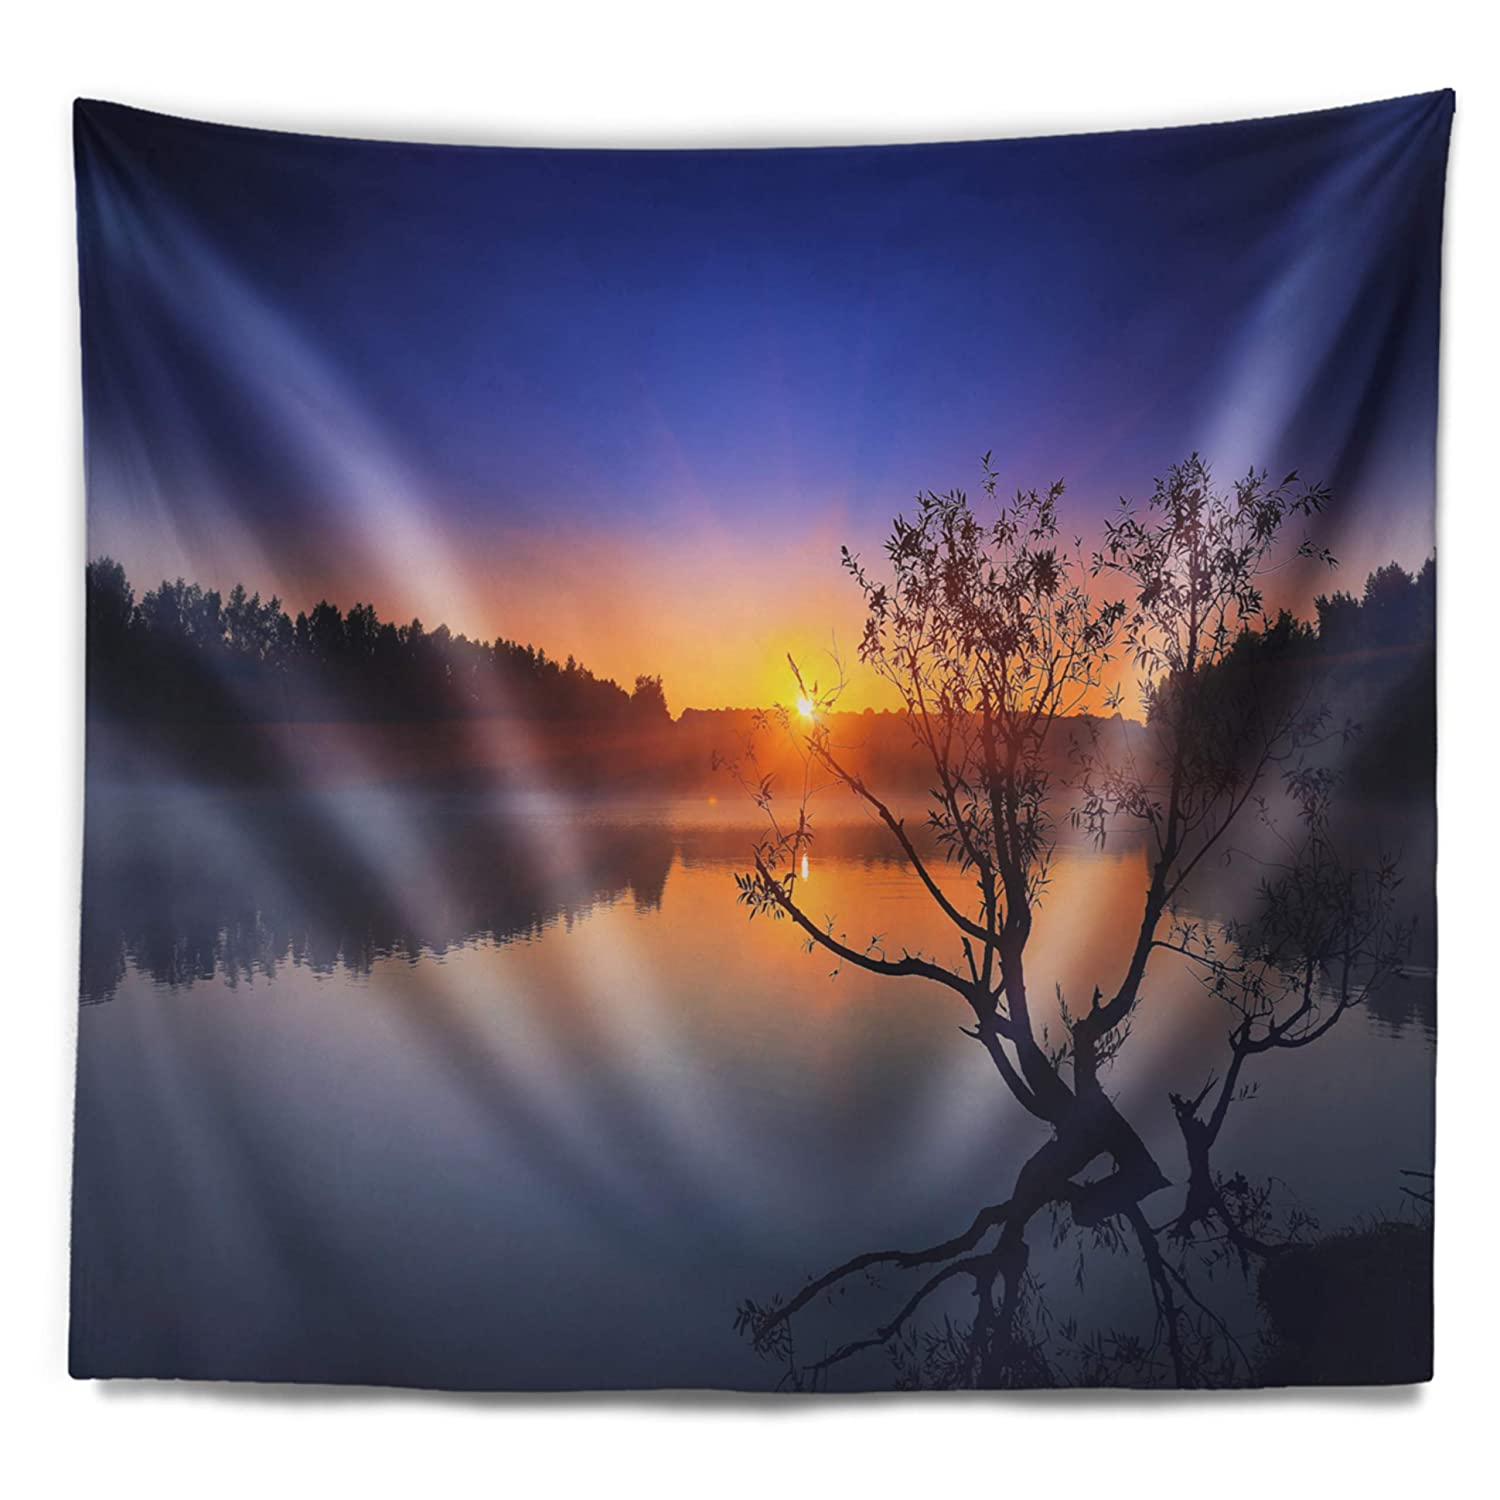 Designart TAP10768-39-32  Lonely Tree in Pond in Blue Landscape Blanket D/écor Art for Home and Office Wall Tapestry Medium 39 in x 32 in Created On Lightweight Polyester Fabric